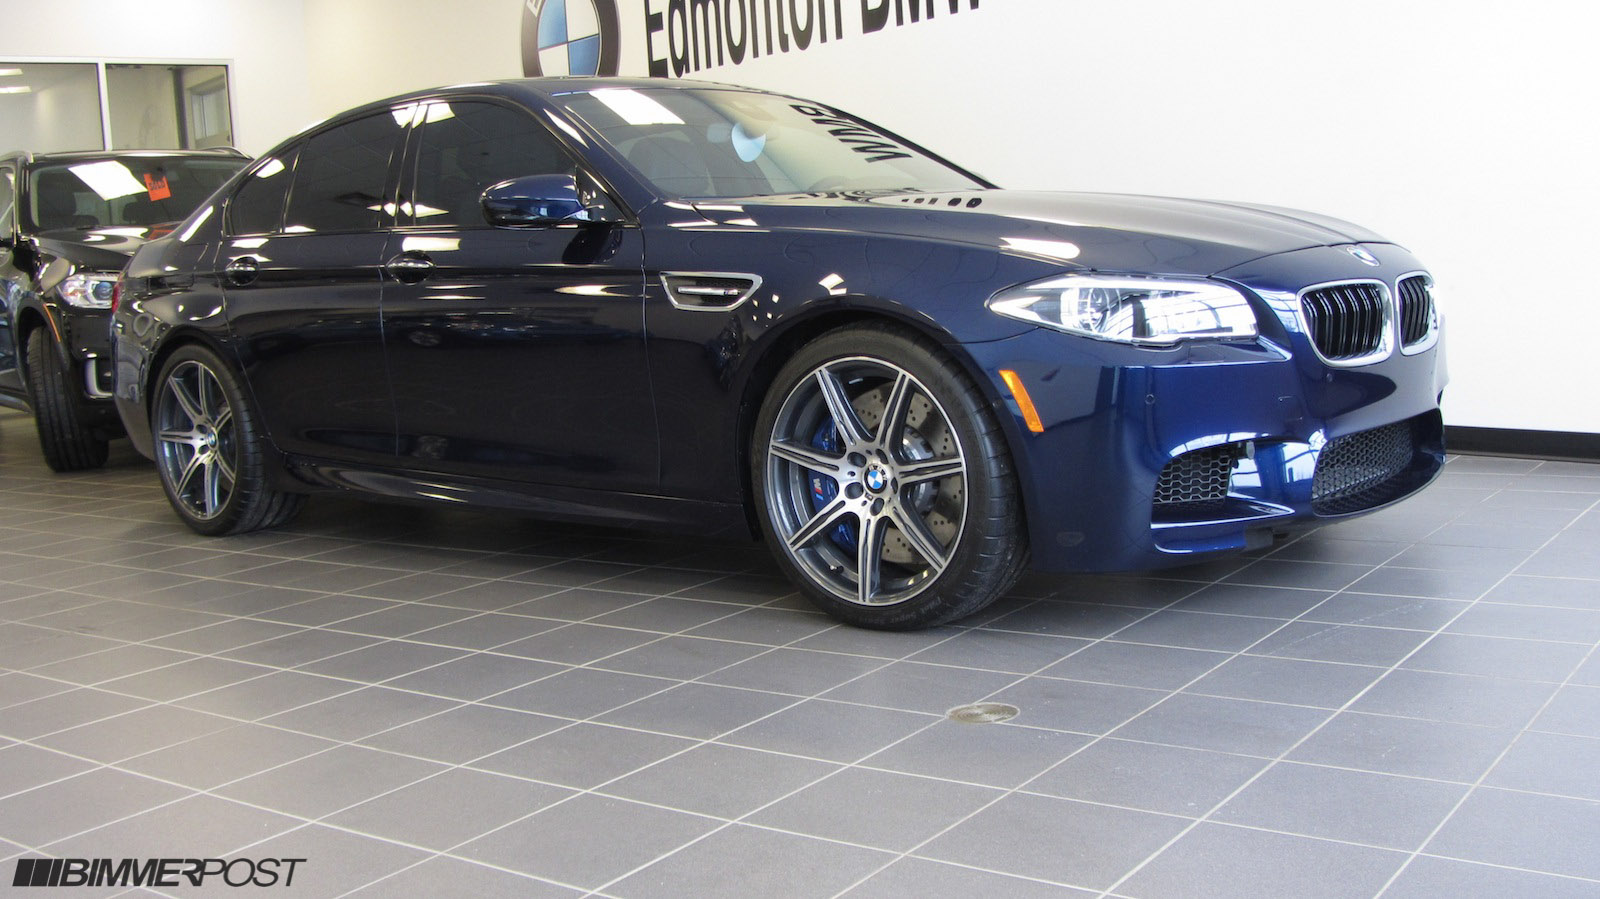 bmw dct2008 bmw m3 v8 dct nav panjo bmw m3 and bmw m4